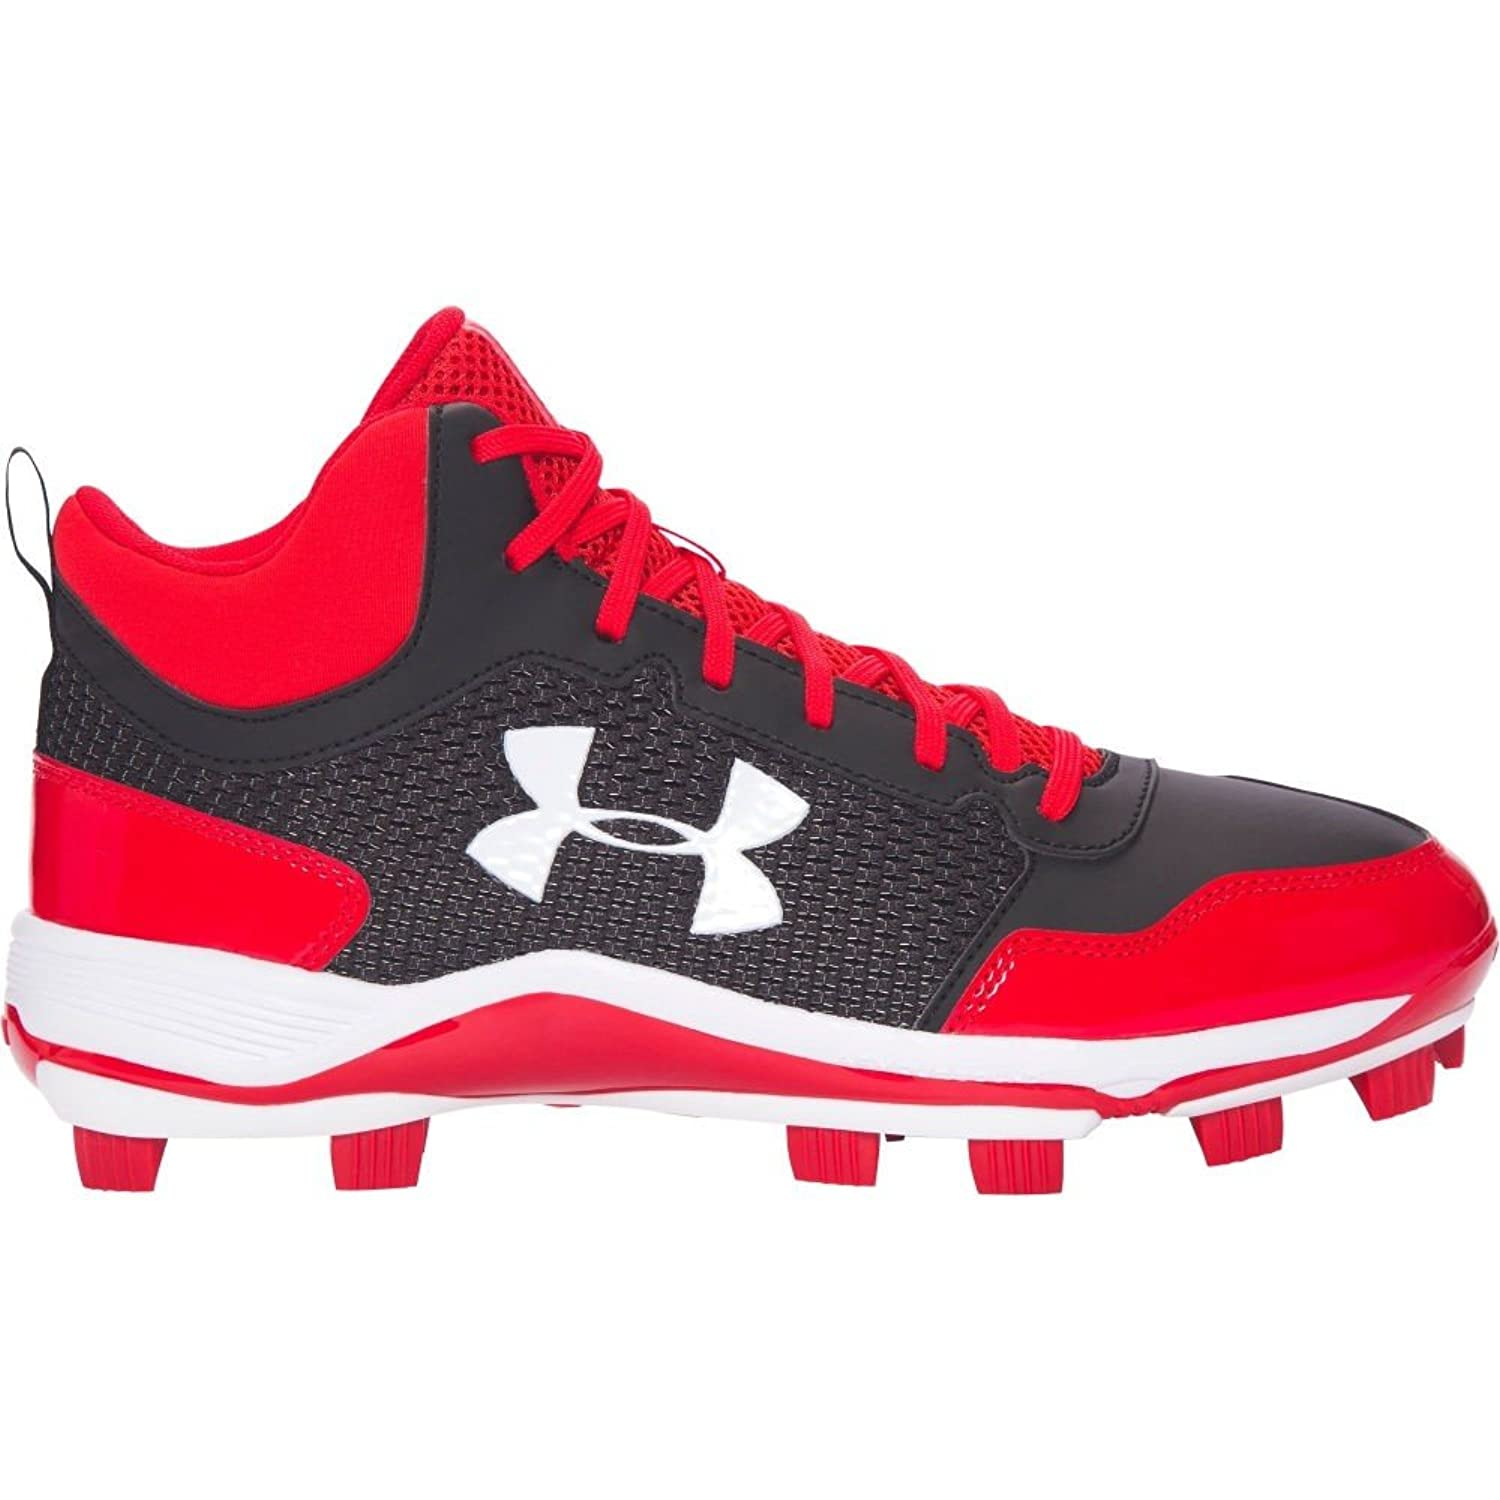 (アンダーアーマー) Under Armour メンズ 野球 シューズ靴 Under Armour Heater Mid TPU Baseball Cleats [並行輸入品] B077Y9QY45 13.0-Medium